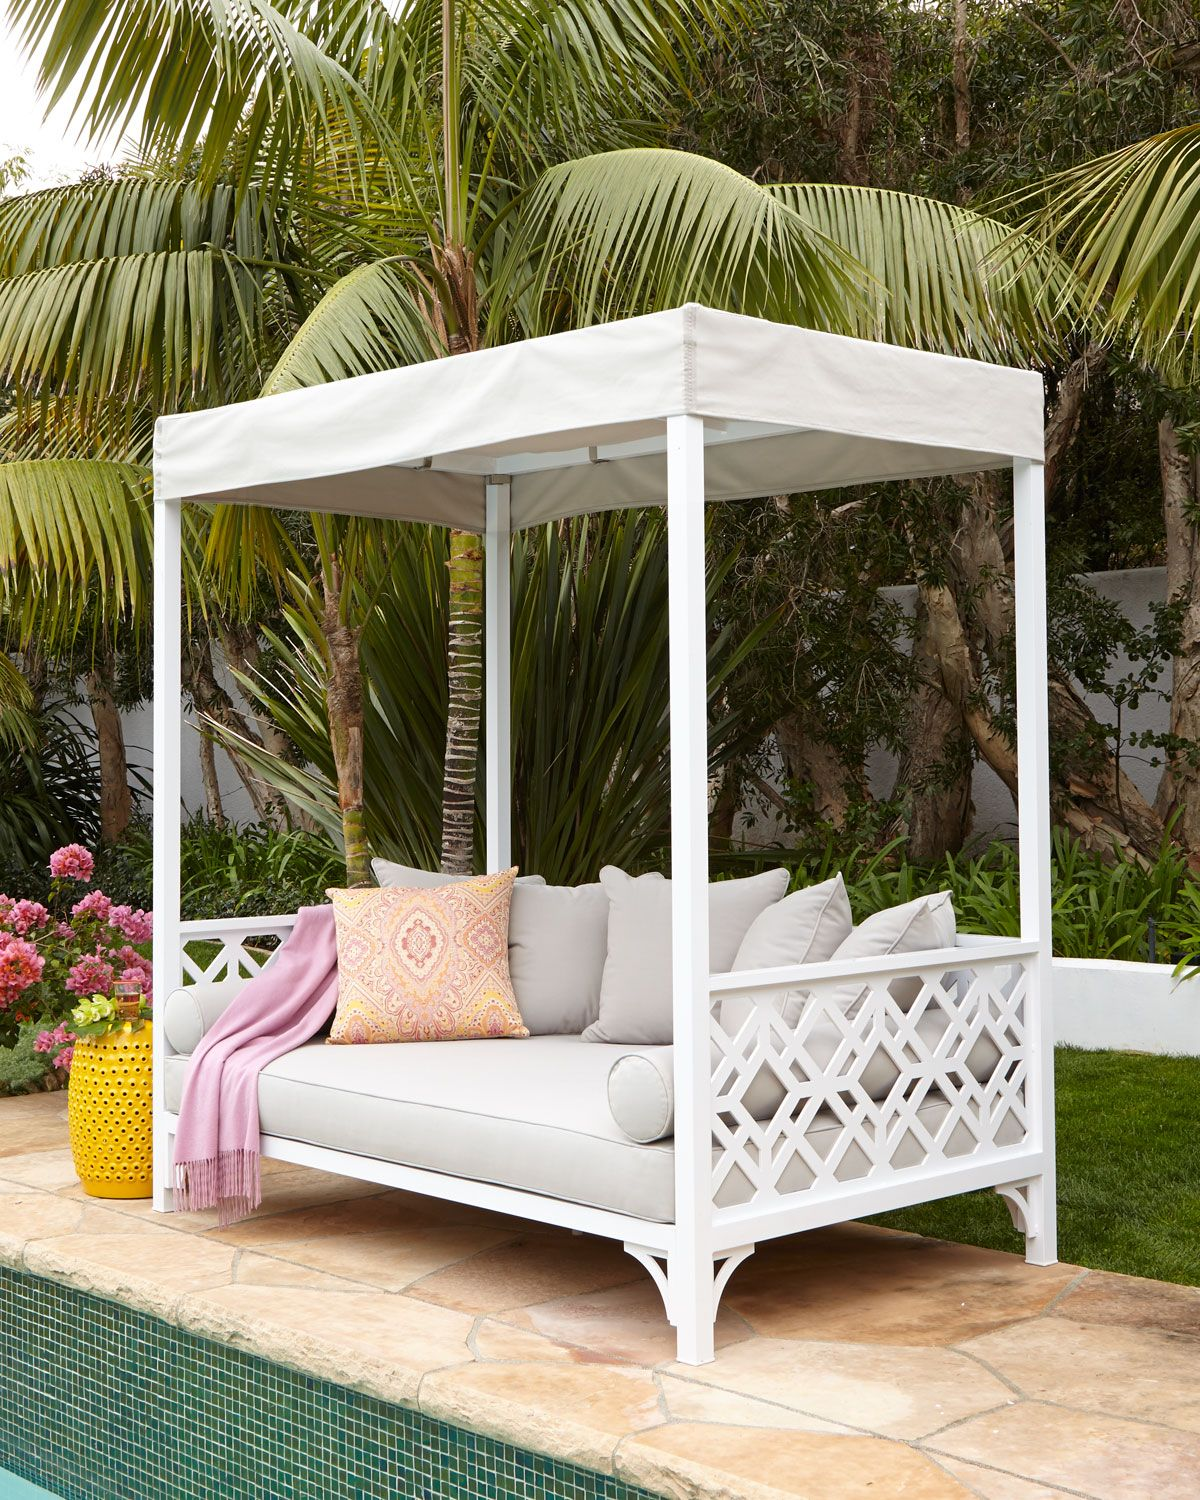 Genial MADE IN THE SHADE: A CANOPY COVERED OUTDOOR DAYBED MADE FOR LOUNGING